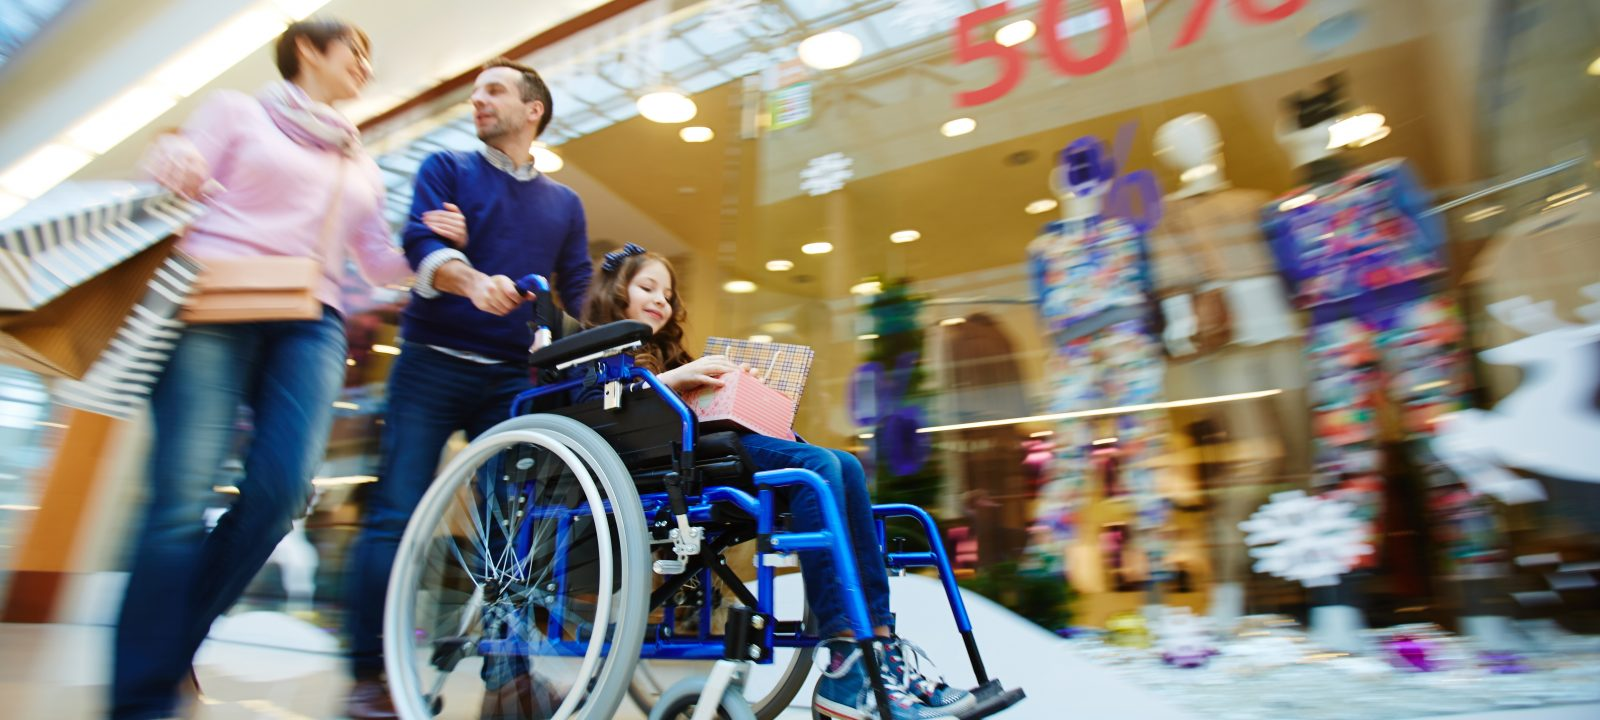 Disabled Access Guide, Accesiblity Reviews / Directory of Business Premises, Shops, Transport, Restaurants etc